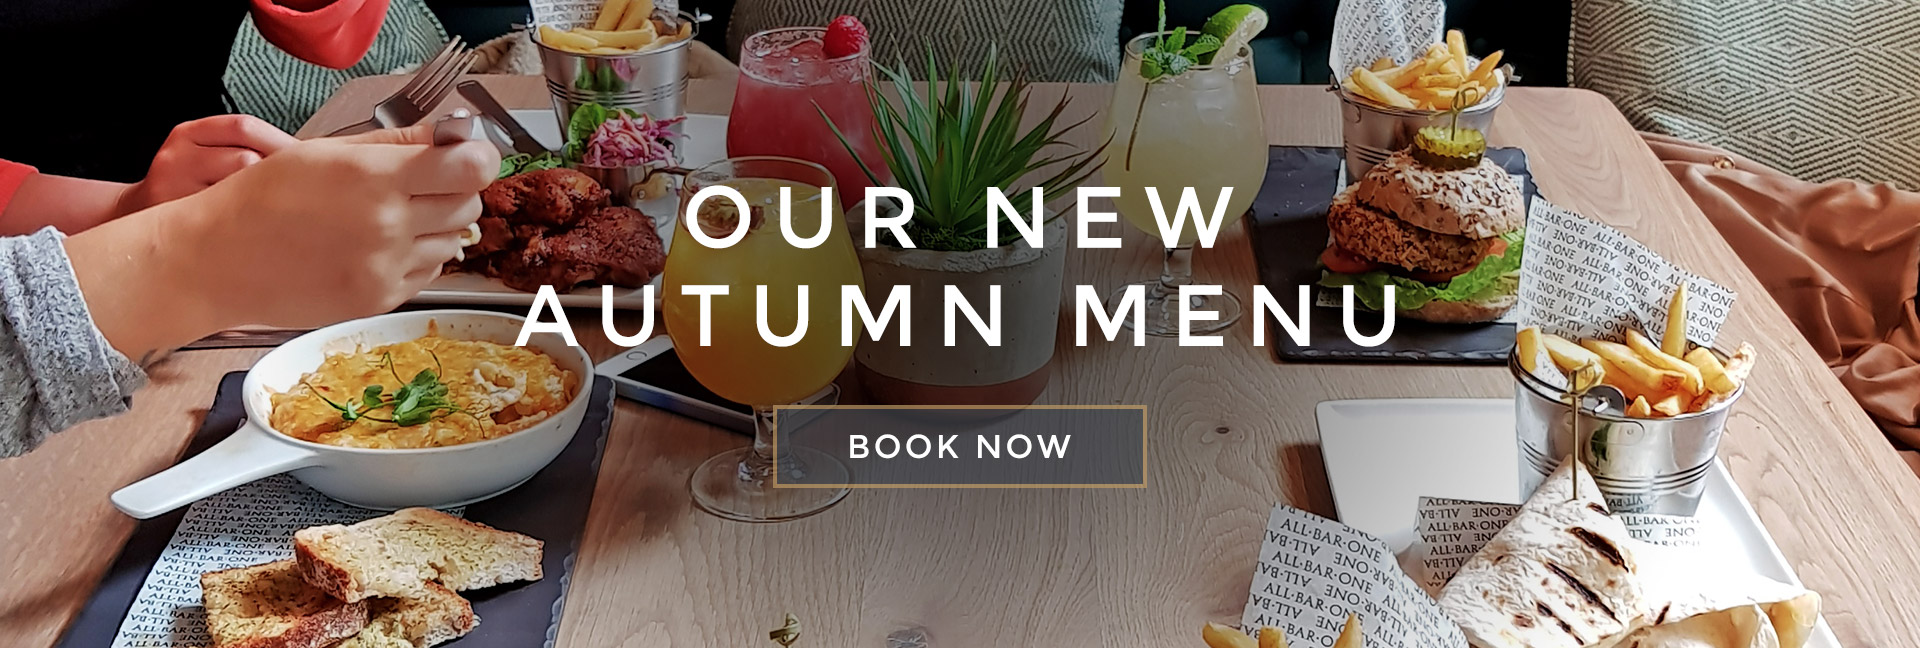 Our new Autumn menu at All Bar One Holborn - Book now